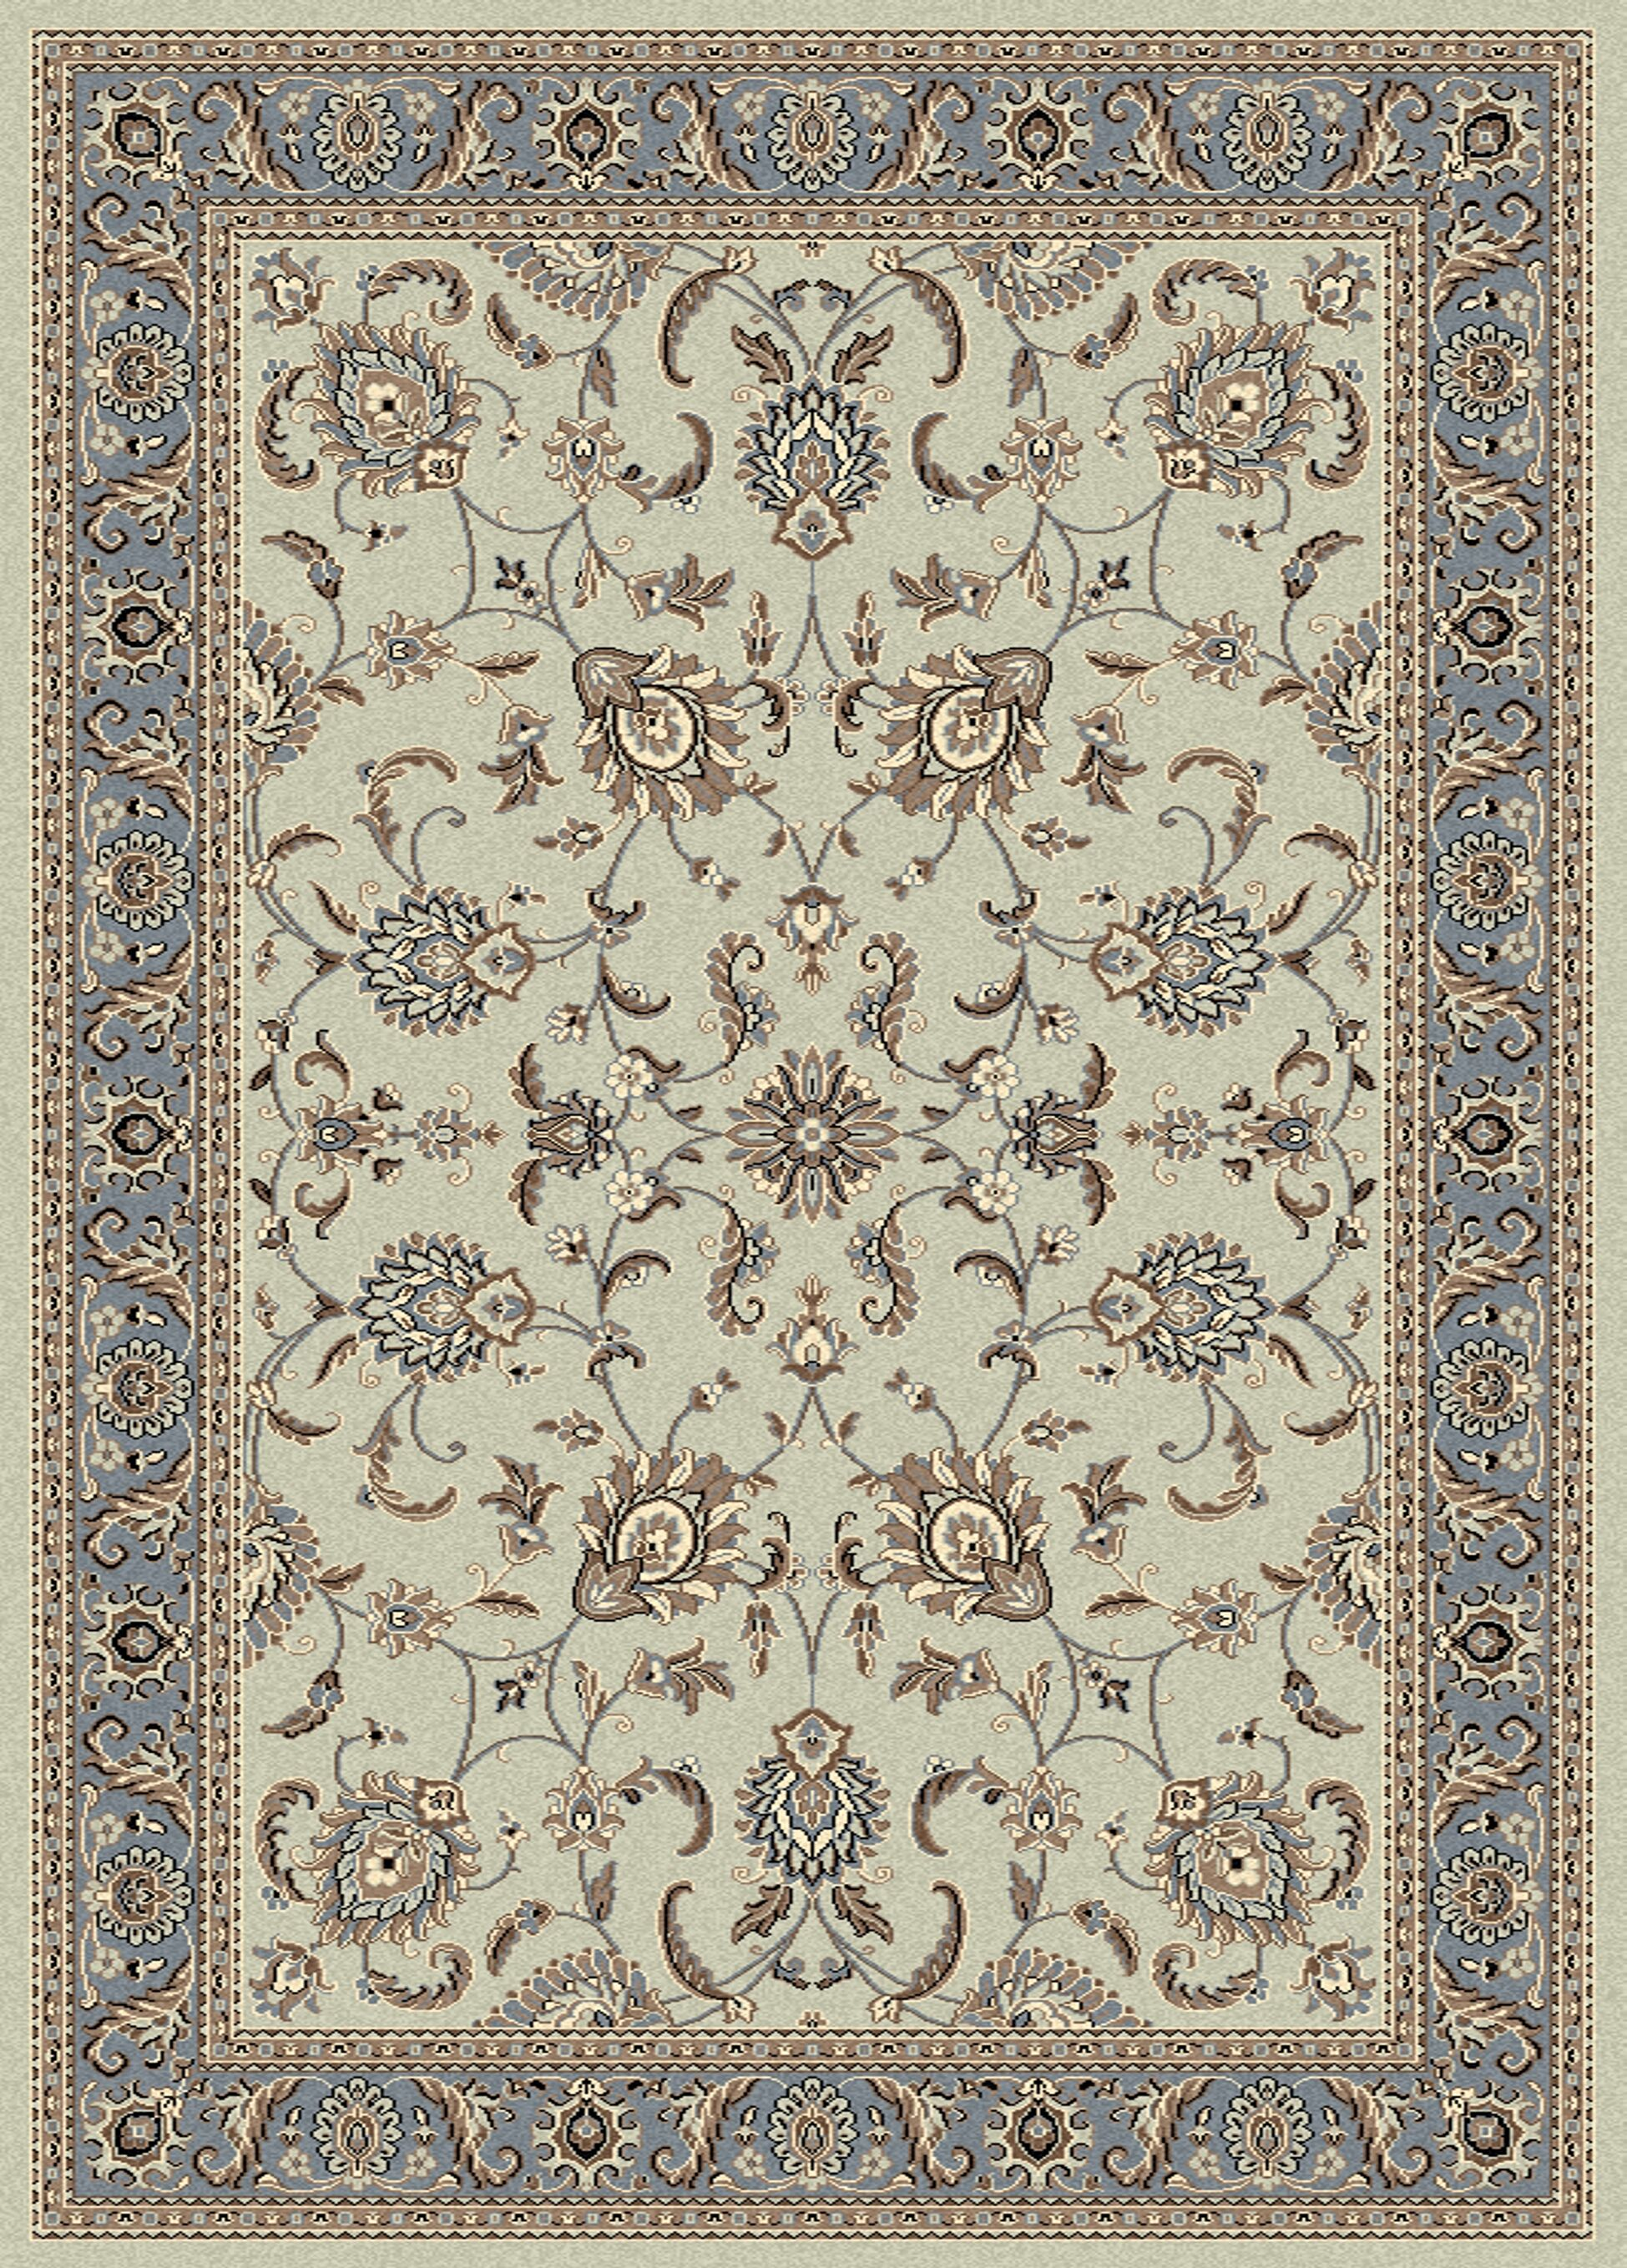 Weiser Green Area Rug Rug Size: Rectangle 7'9